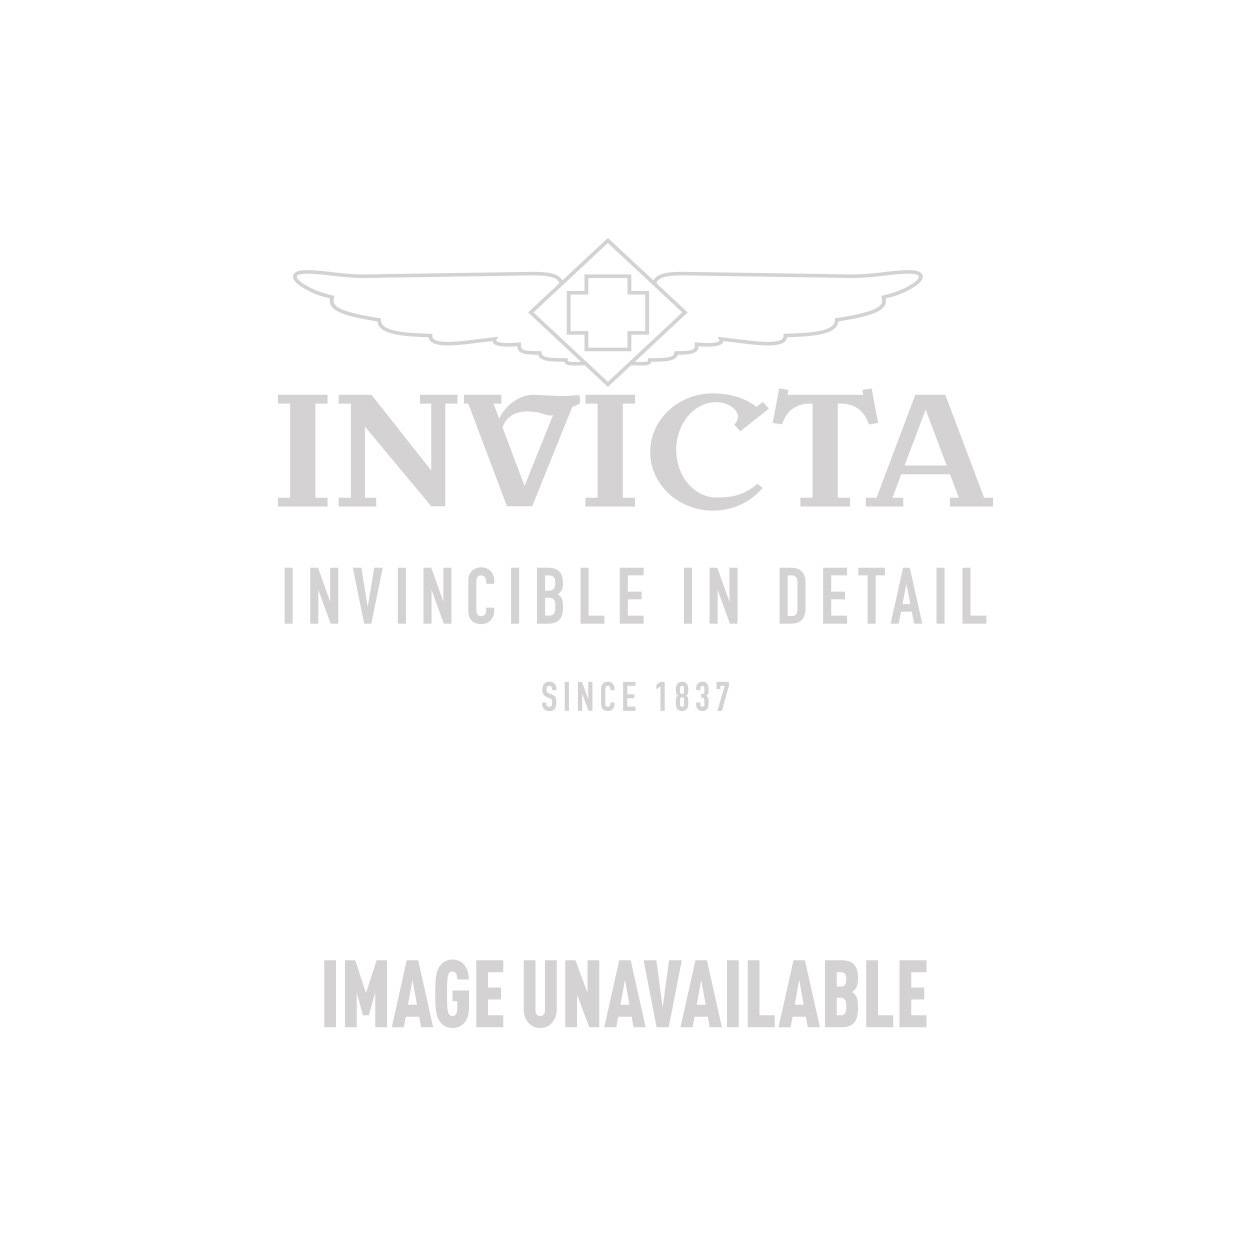 Invicta Excursion Swiss Made Quartz Watch - Stainless Steel case Stainless Steel band - Model 13083